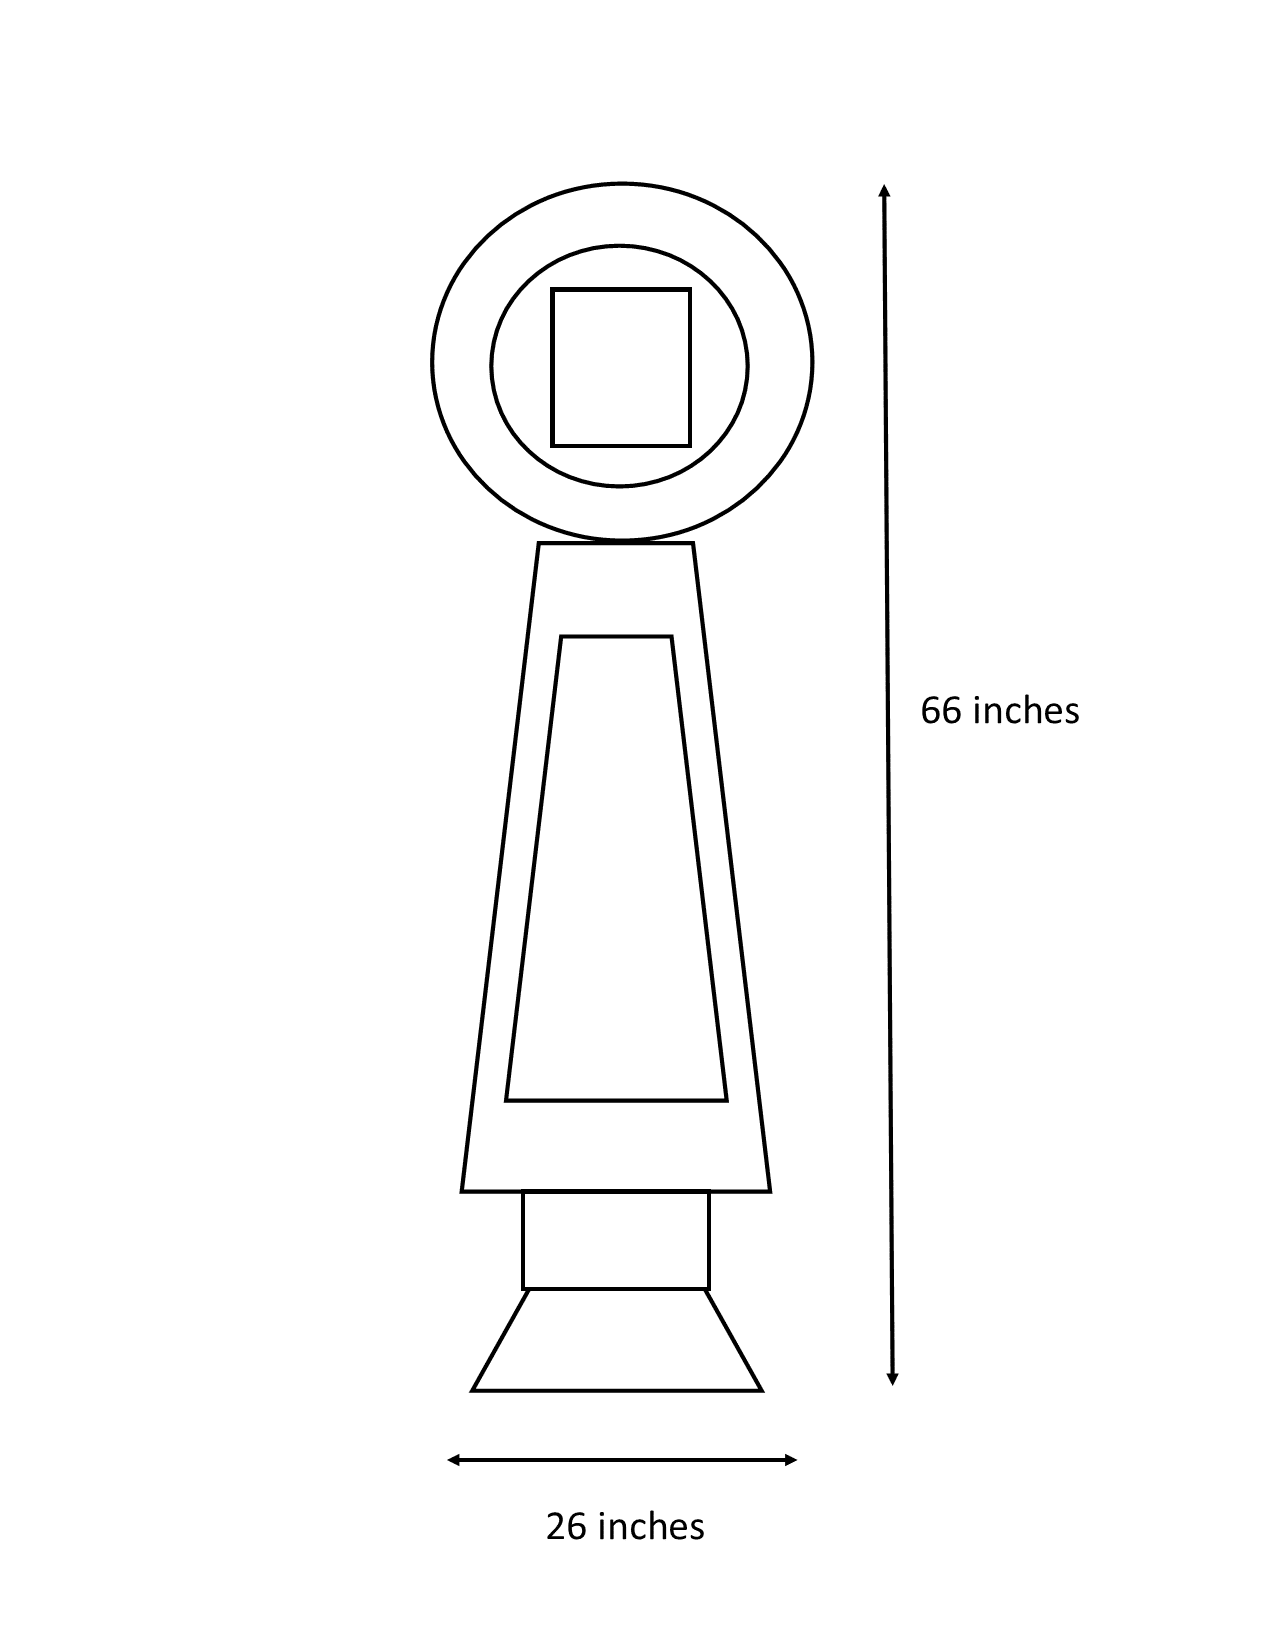 Pylon Dimensions